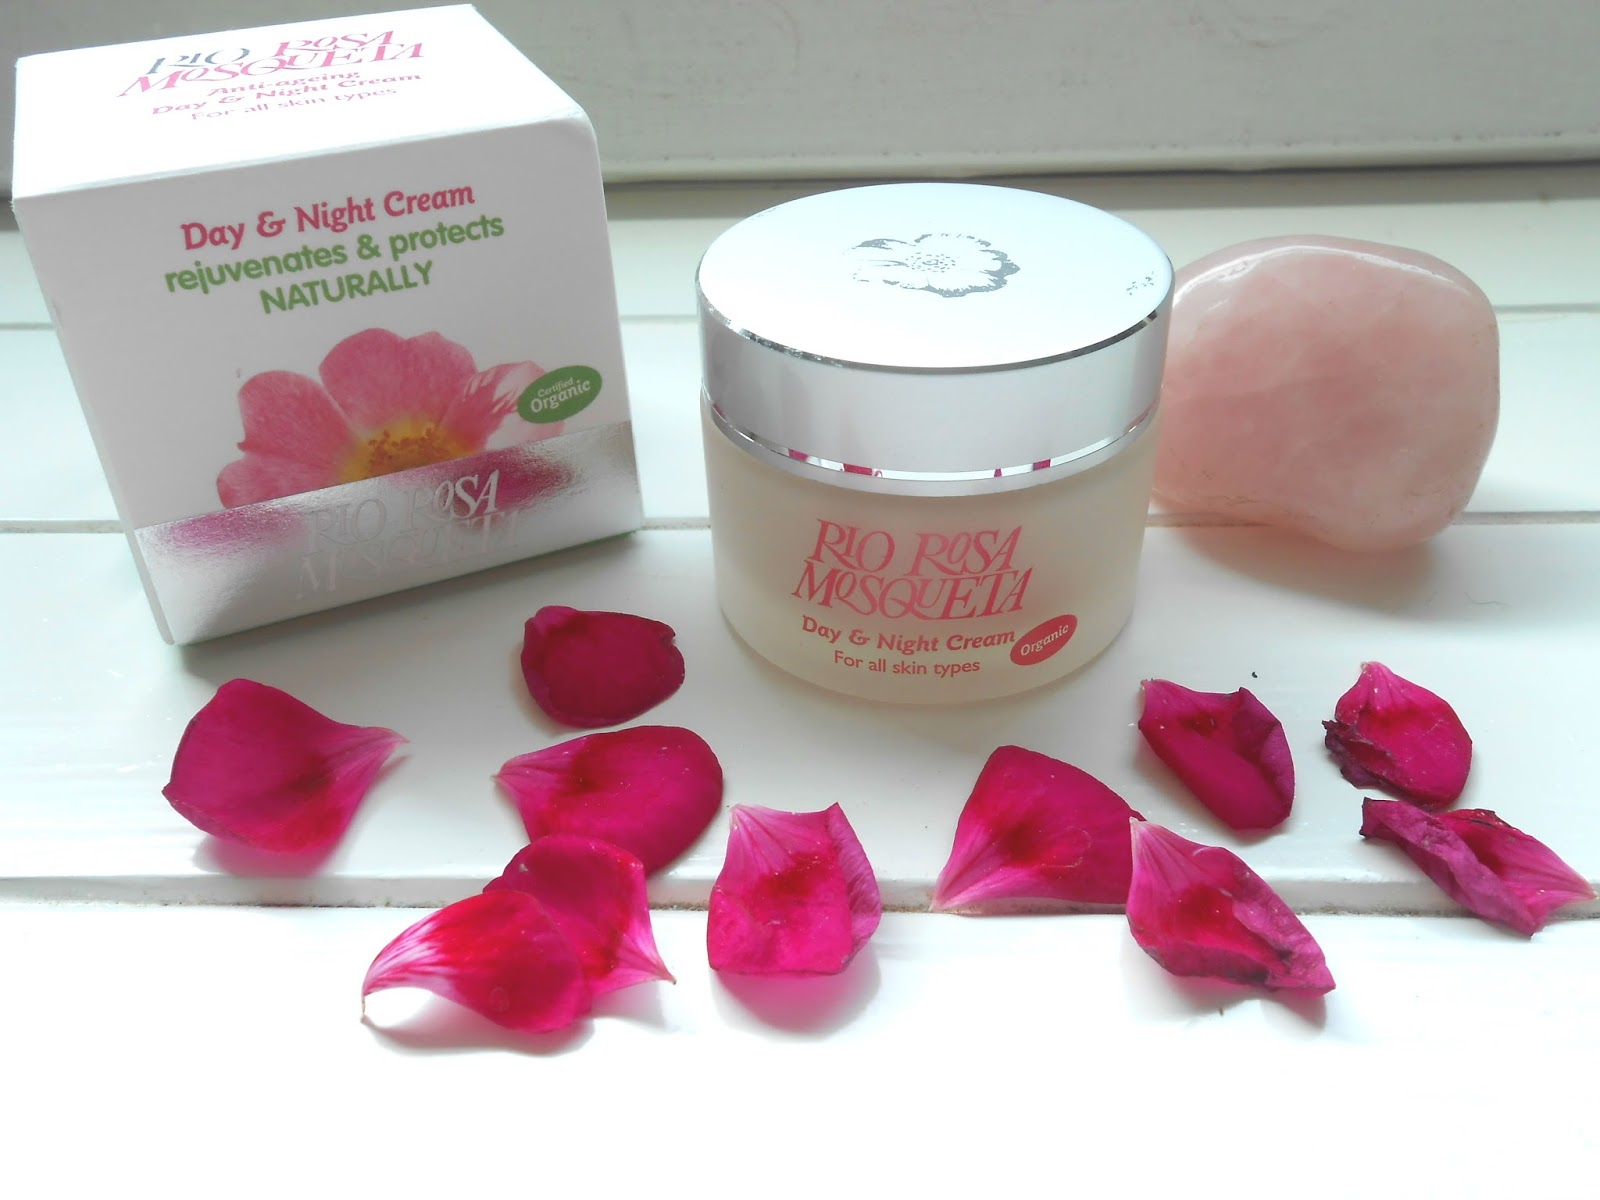 Rio Rosa Mosqueta Anti-Ageing Day & Night Cream